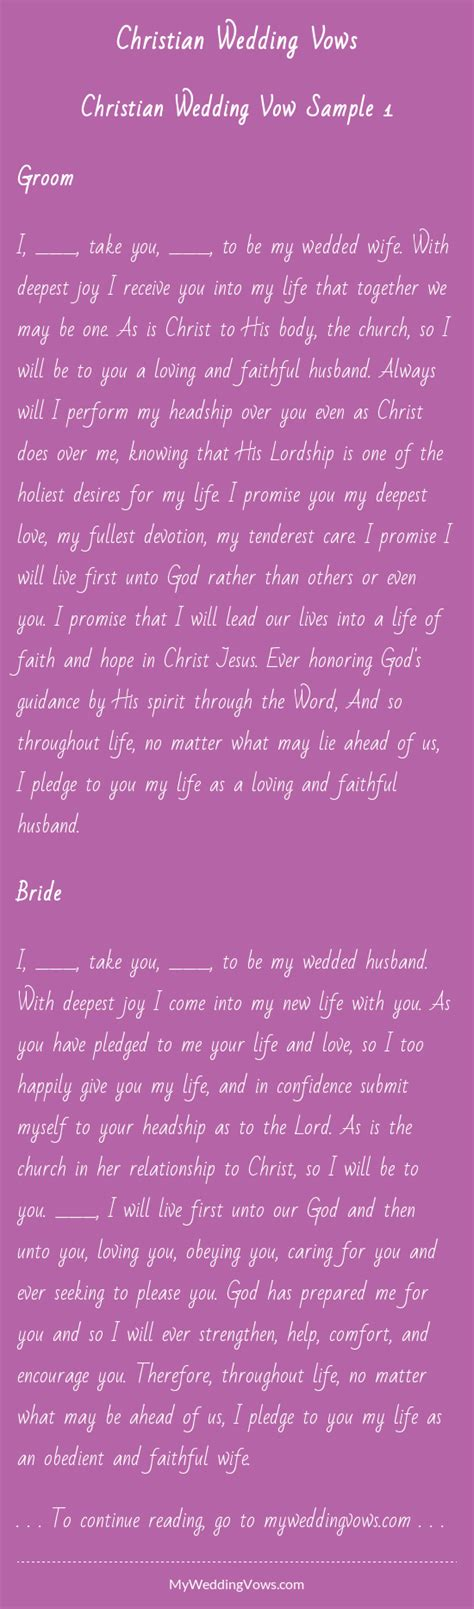 christian wedding vows christian wedding vows wedding vows and churches